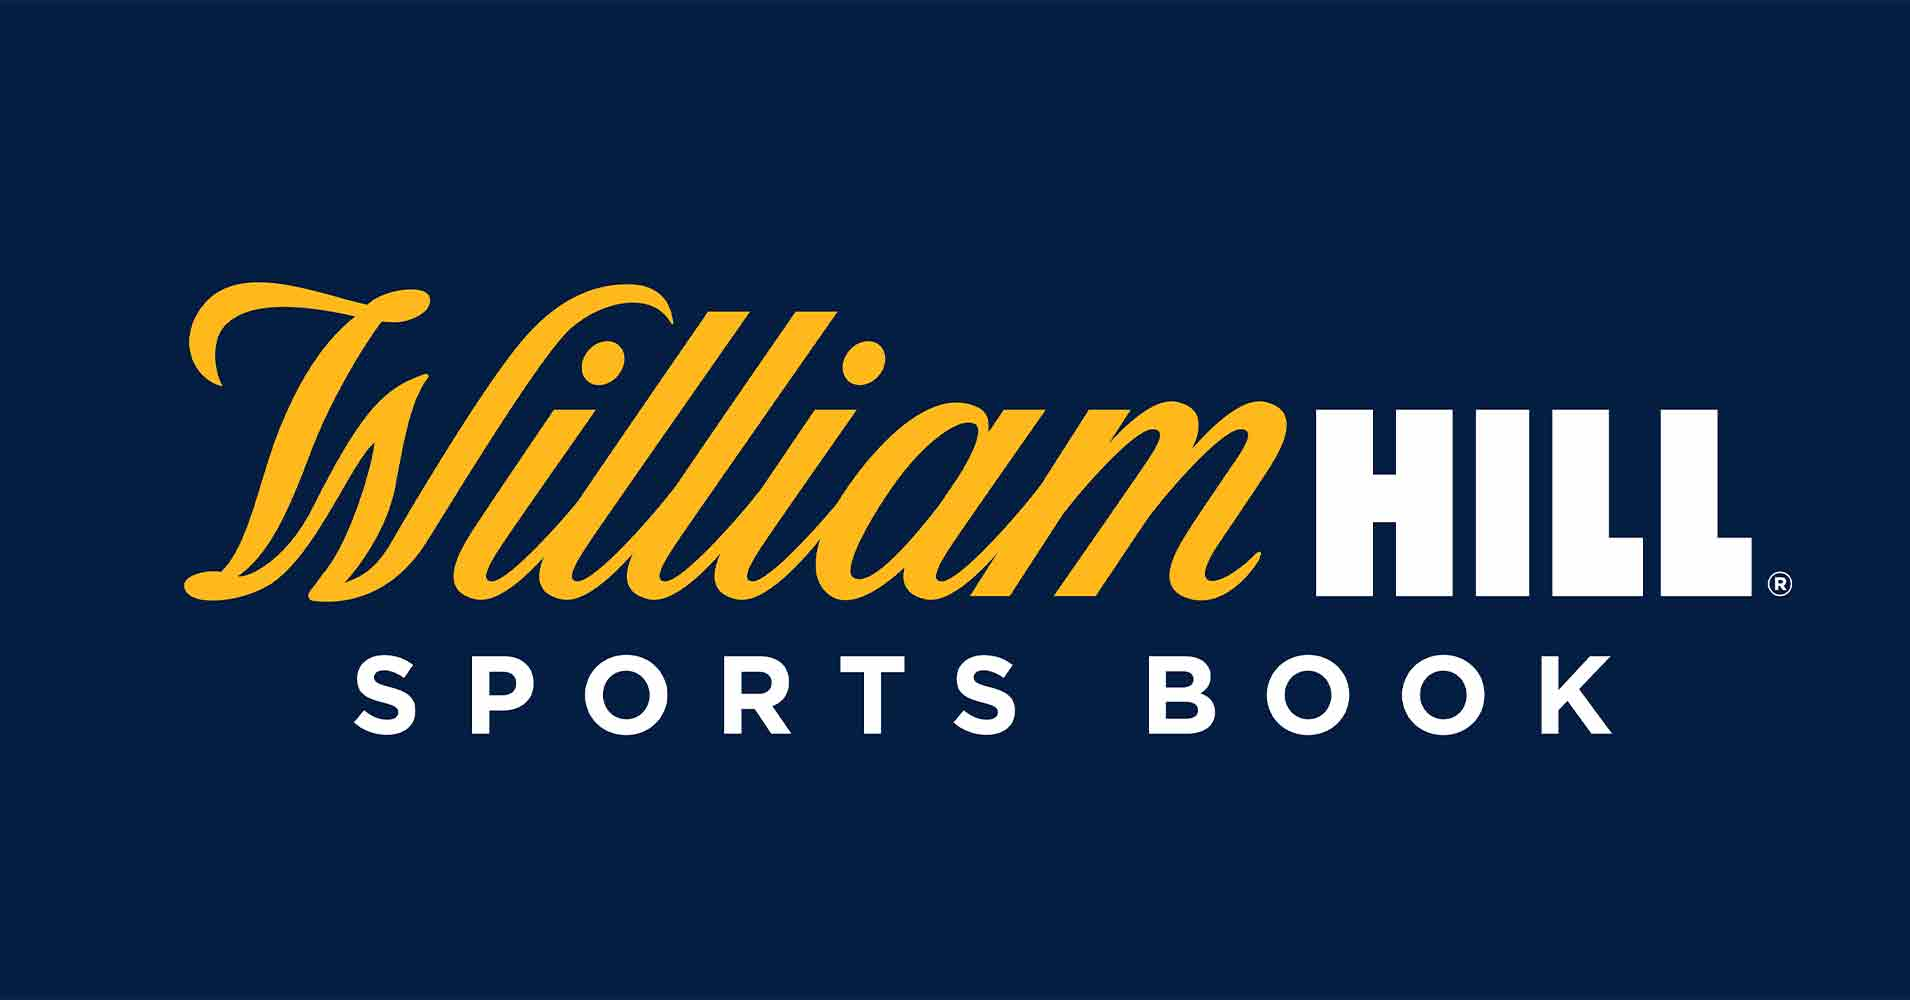 William Hill Sportsbook Review And Promo Code